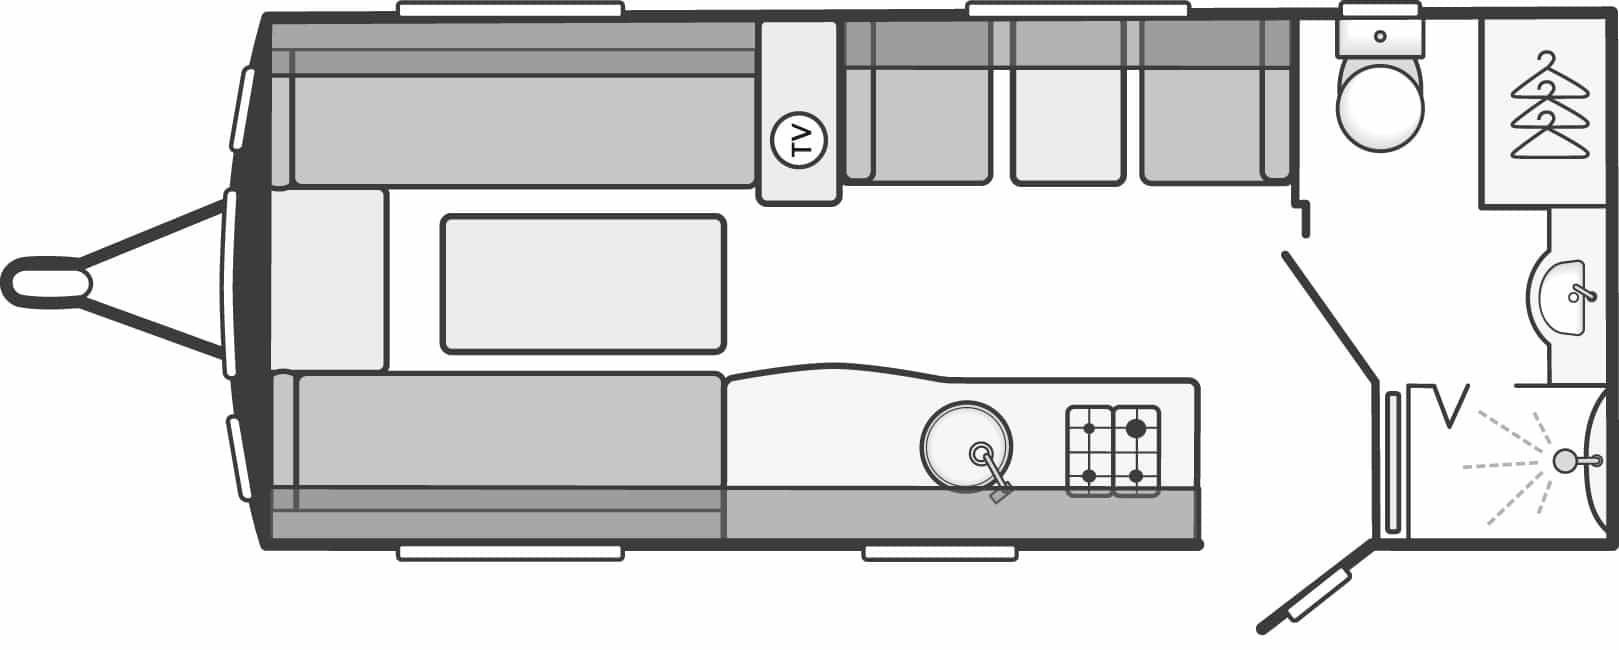 Swift Eccles 530 - 4 Berth, Side Dinette, End Washroom